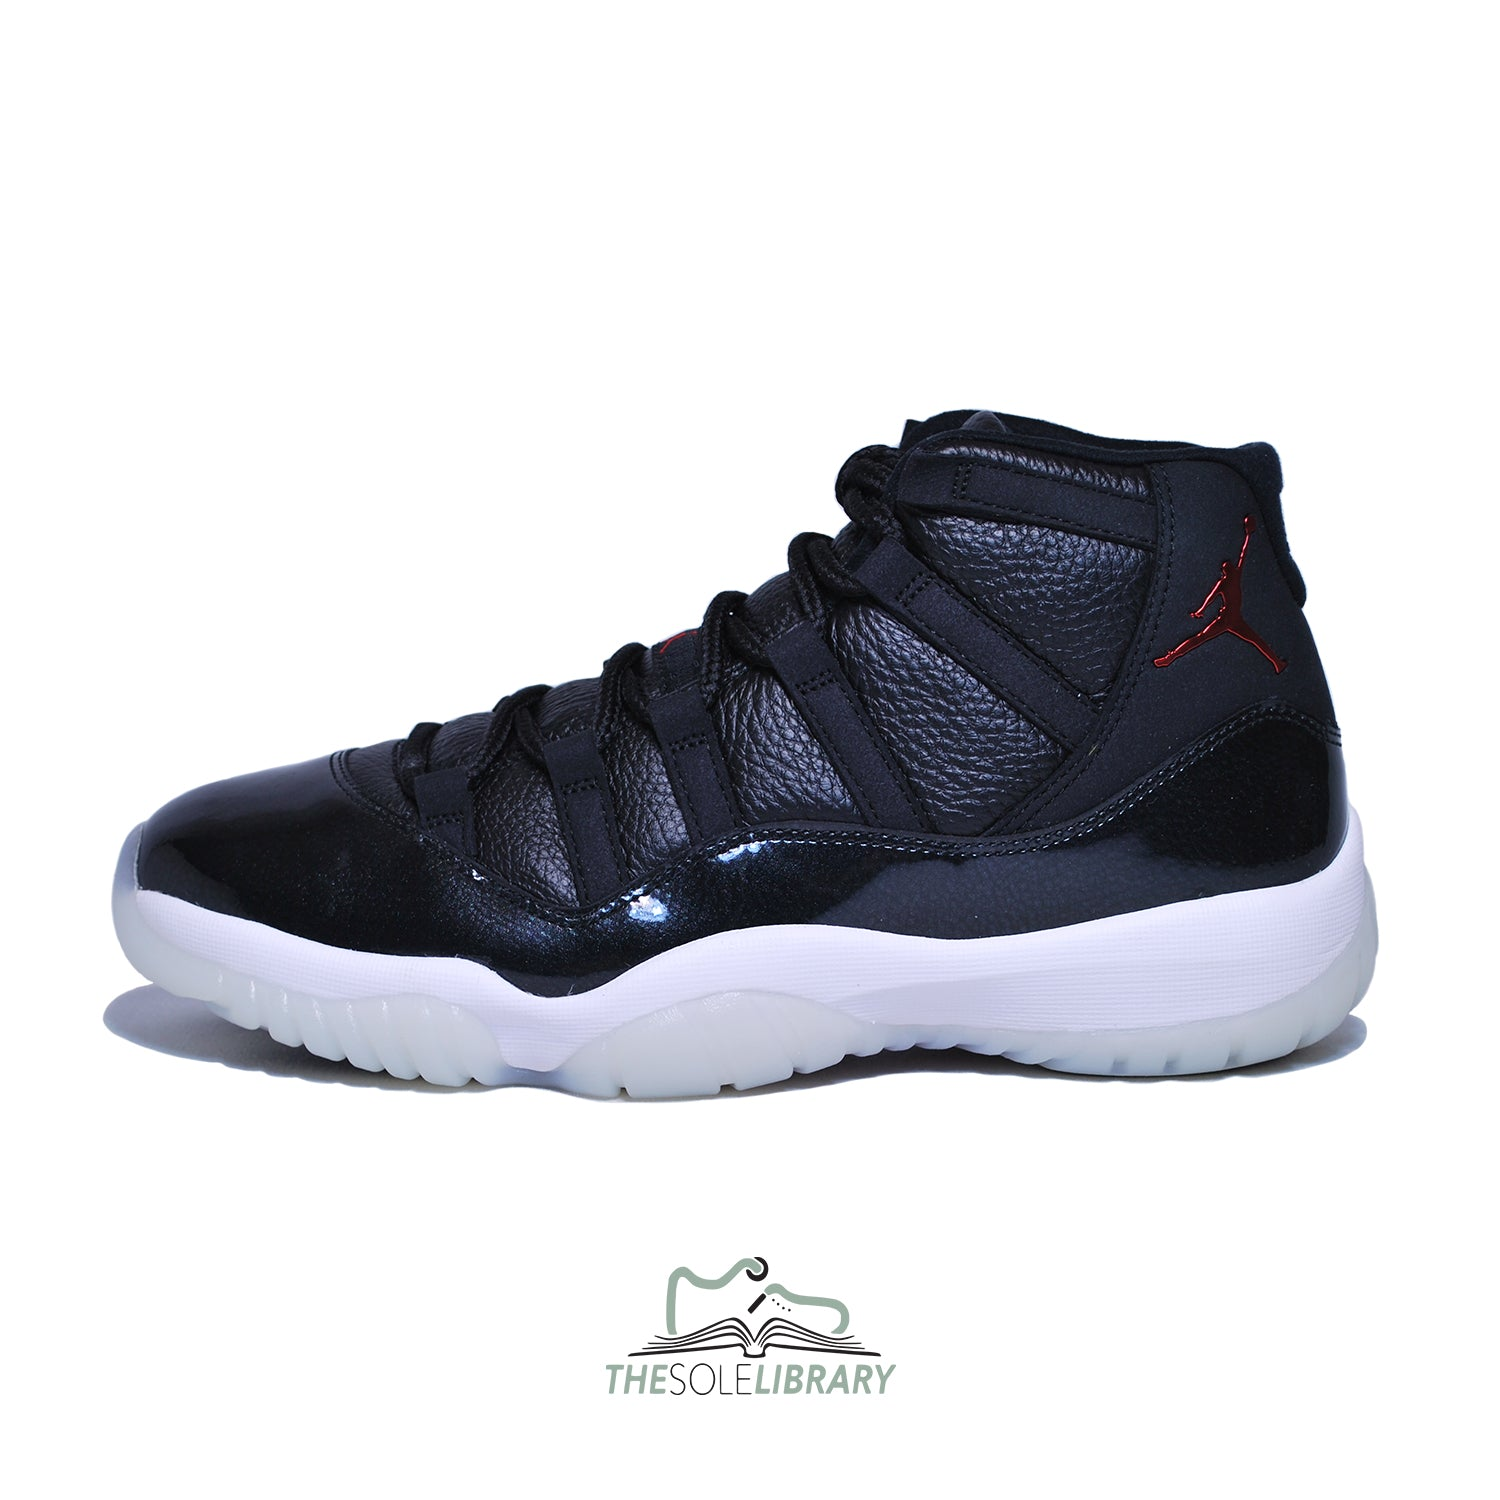 2dface3114d Jordan 11  72-10  on The Sole Library